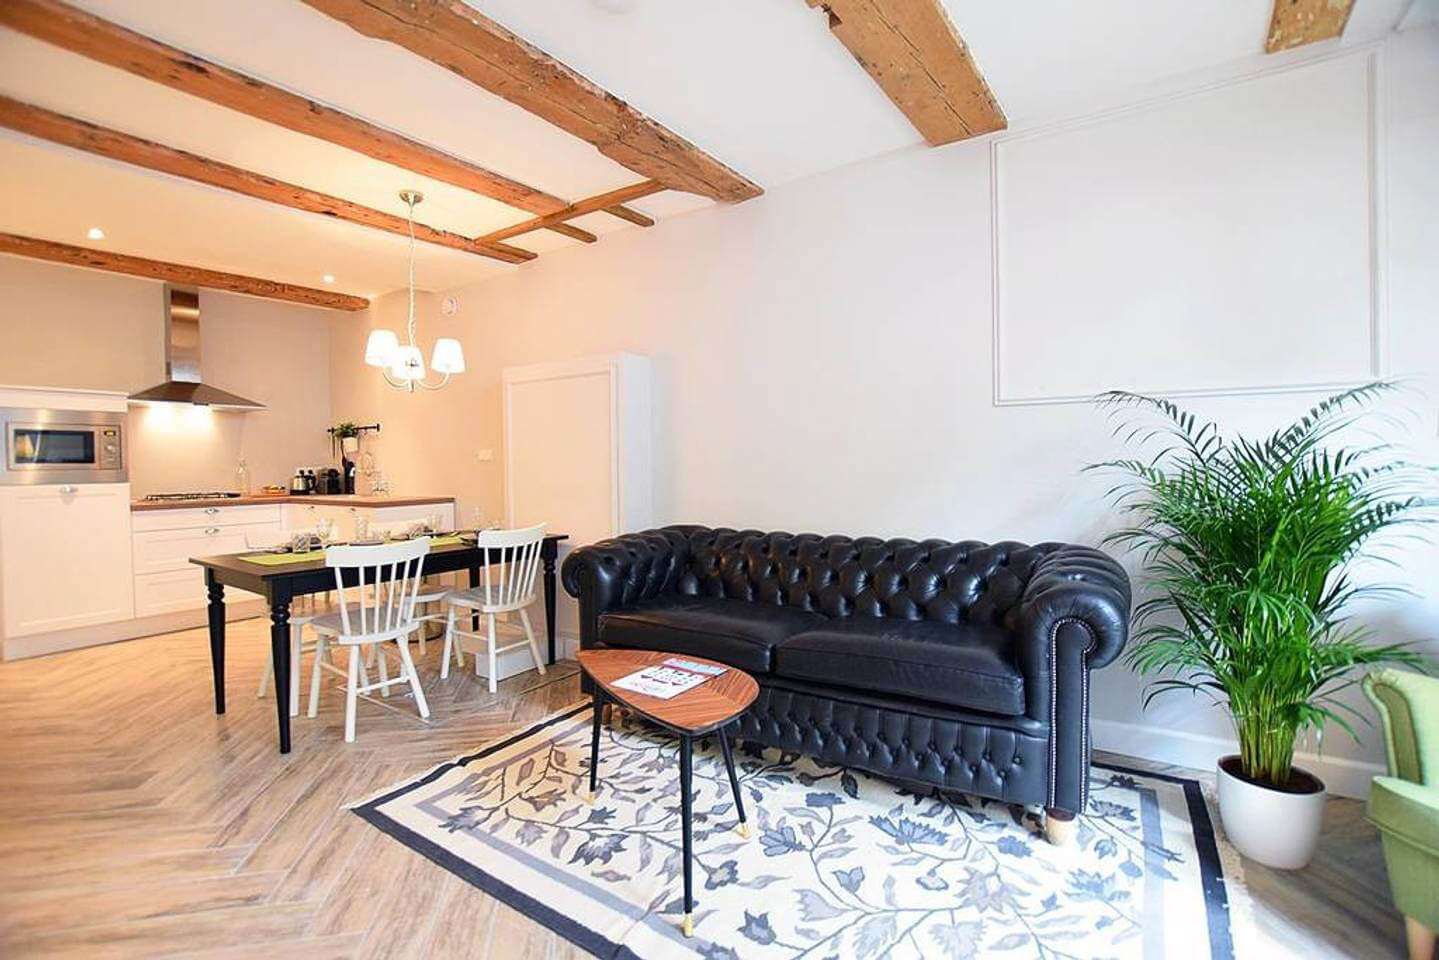 Airbnb Amsterdam apartments - this one is near the Anne Frank House